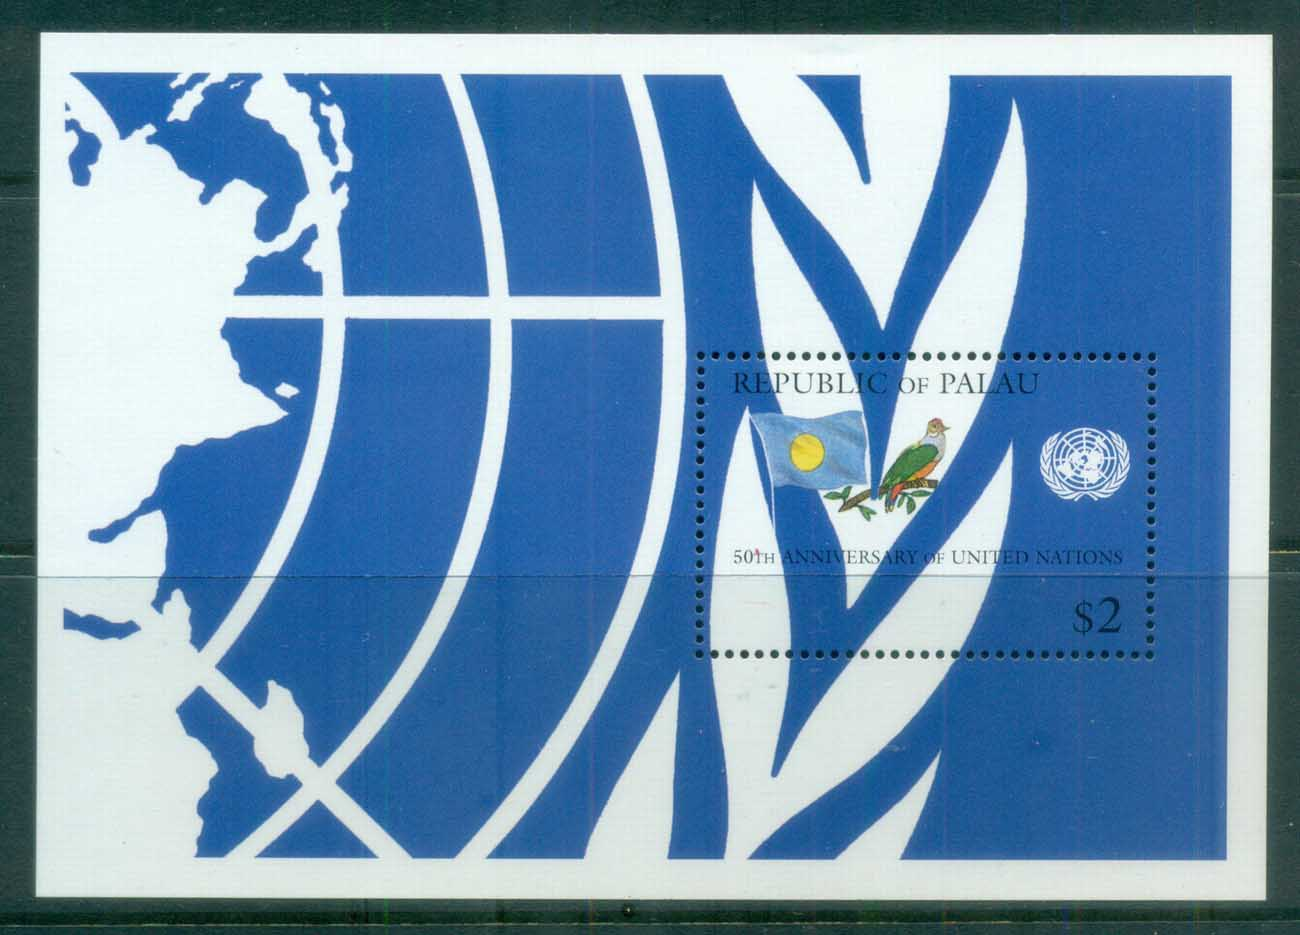 Palau 1995 UN, FAO 50th Anniv, Flag, Bird MS MUH